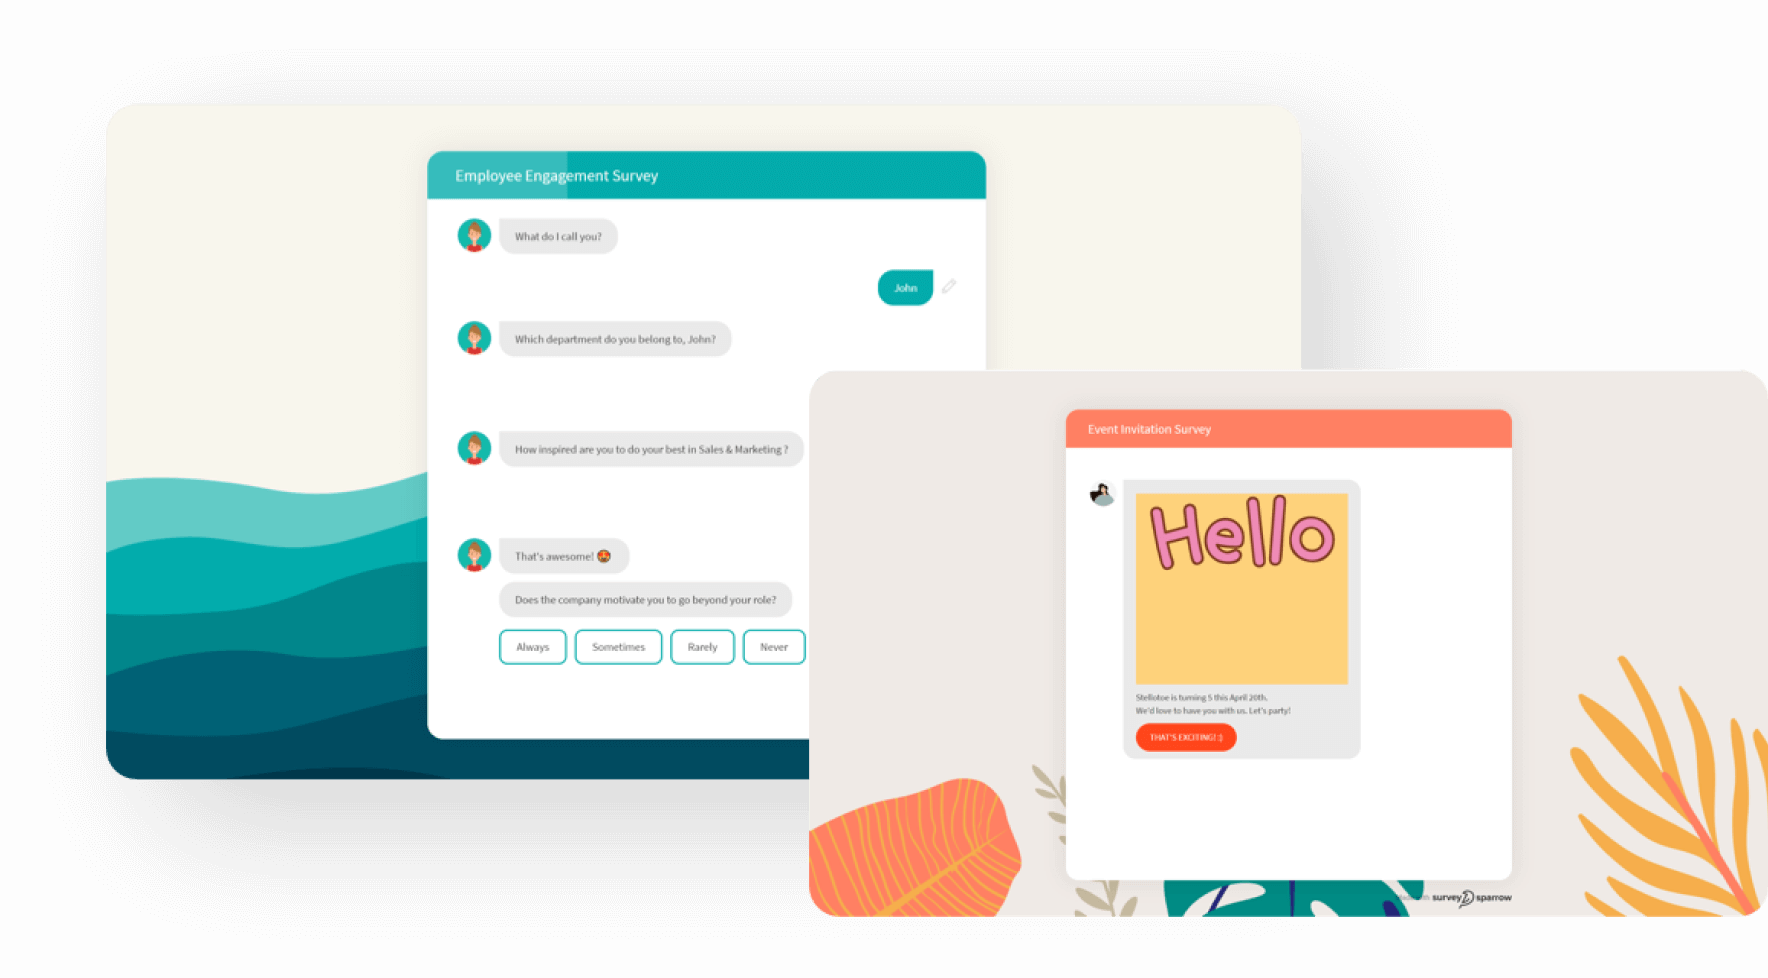 The Chat surveys from SurveySparrow help you engage your respondents & ensure higher completion rates.